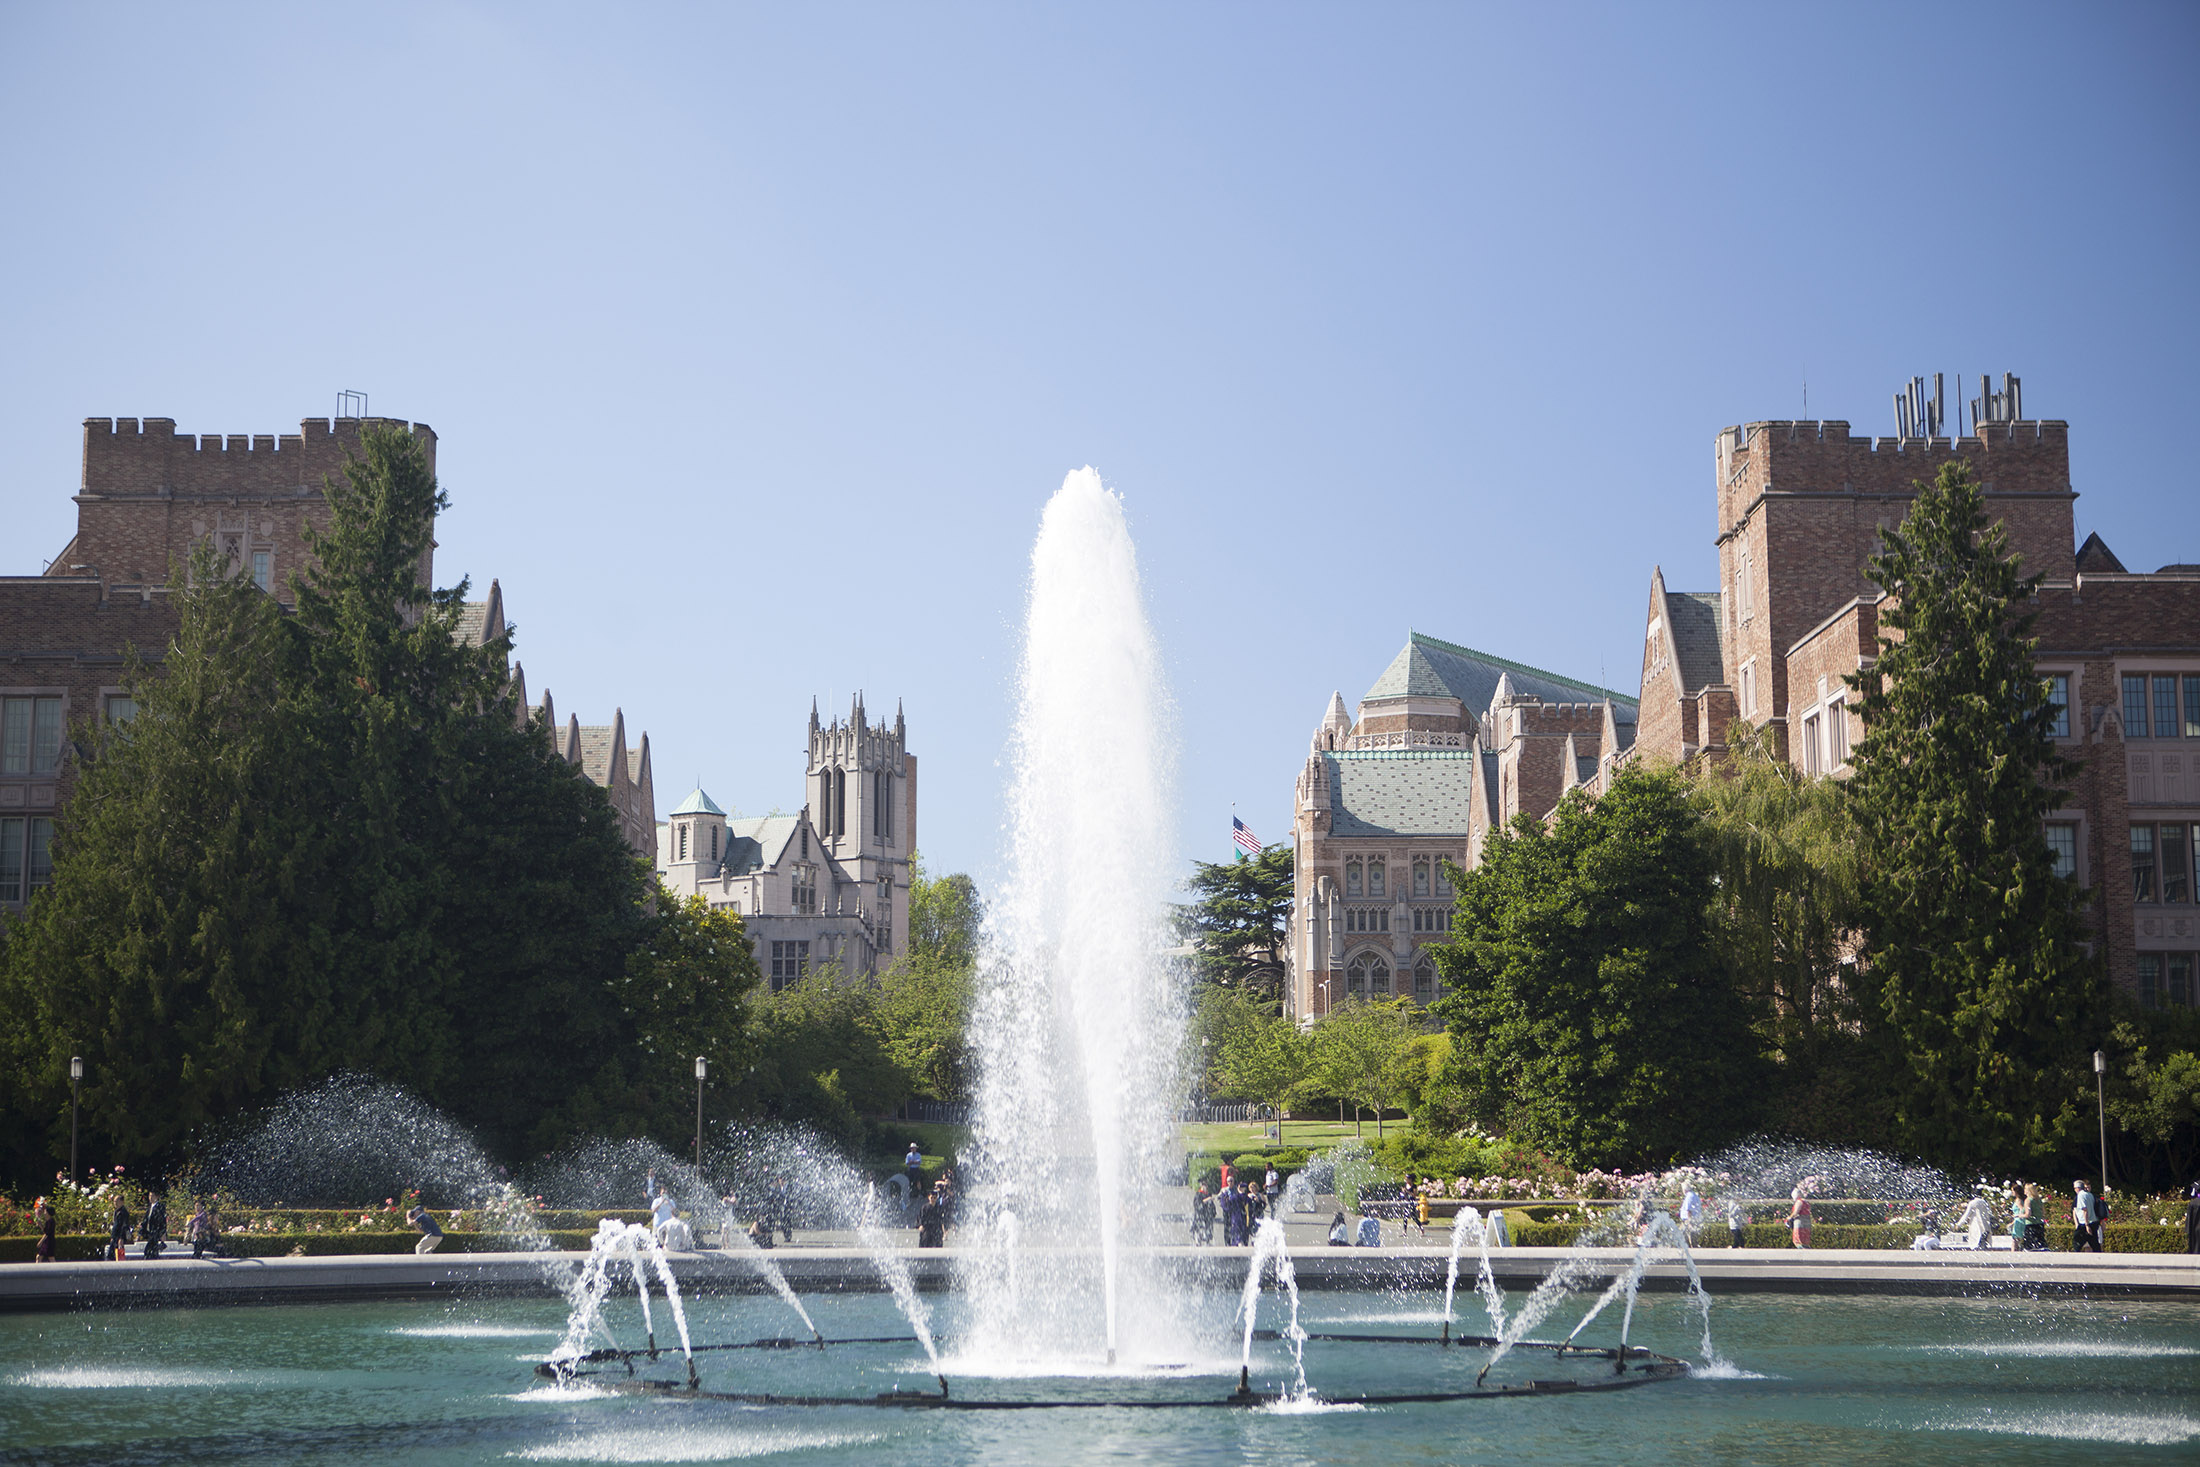 Drumheller Fountain, #1 Most Picturesque College Fountain in the U.S. — LawnStarter, 2015